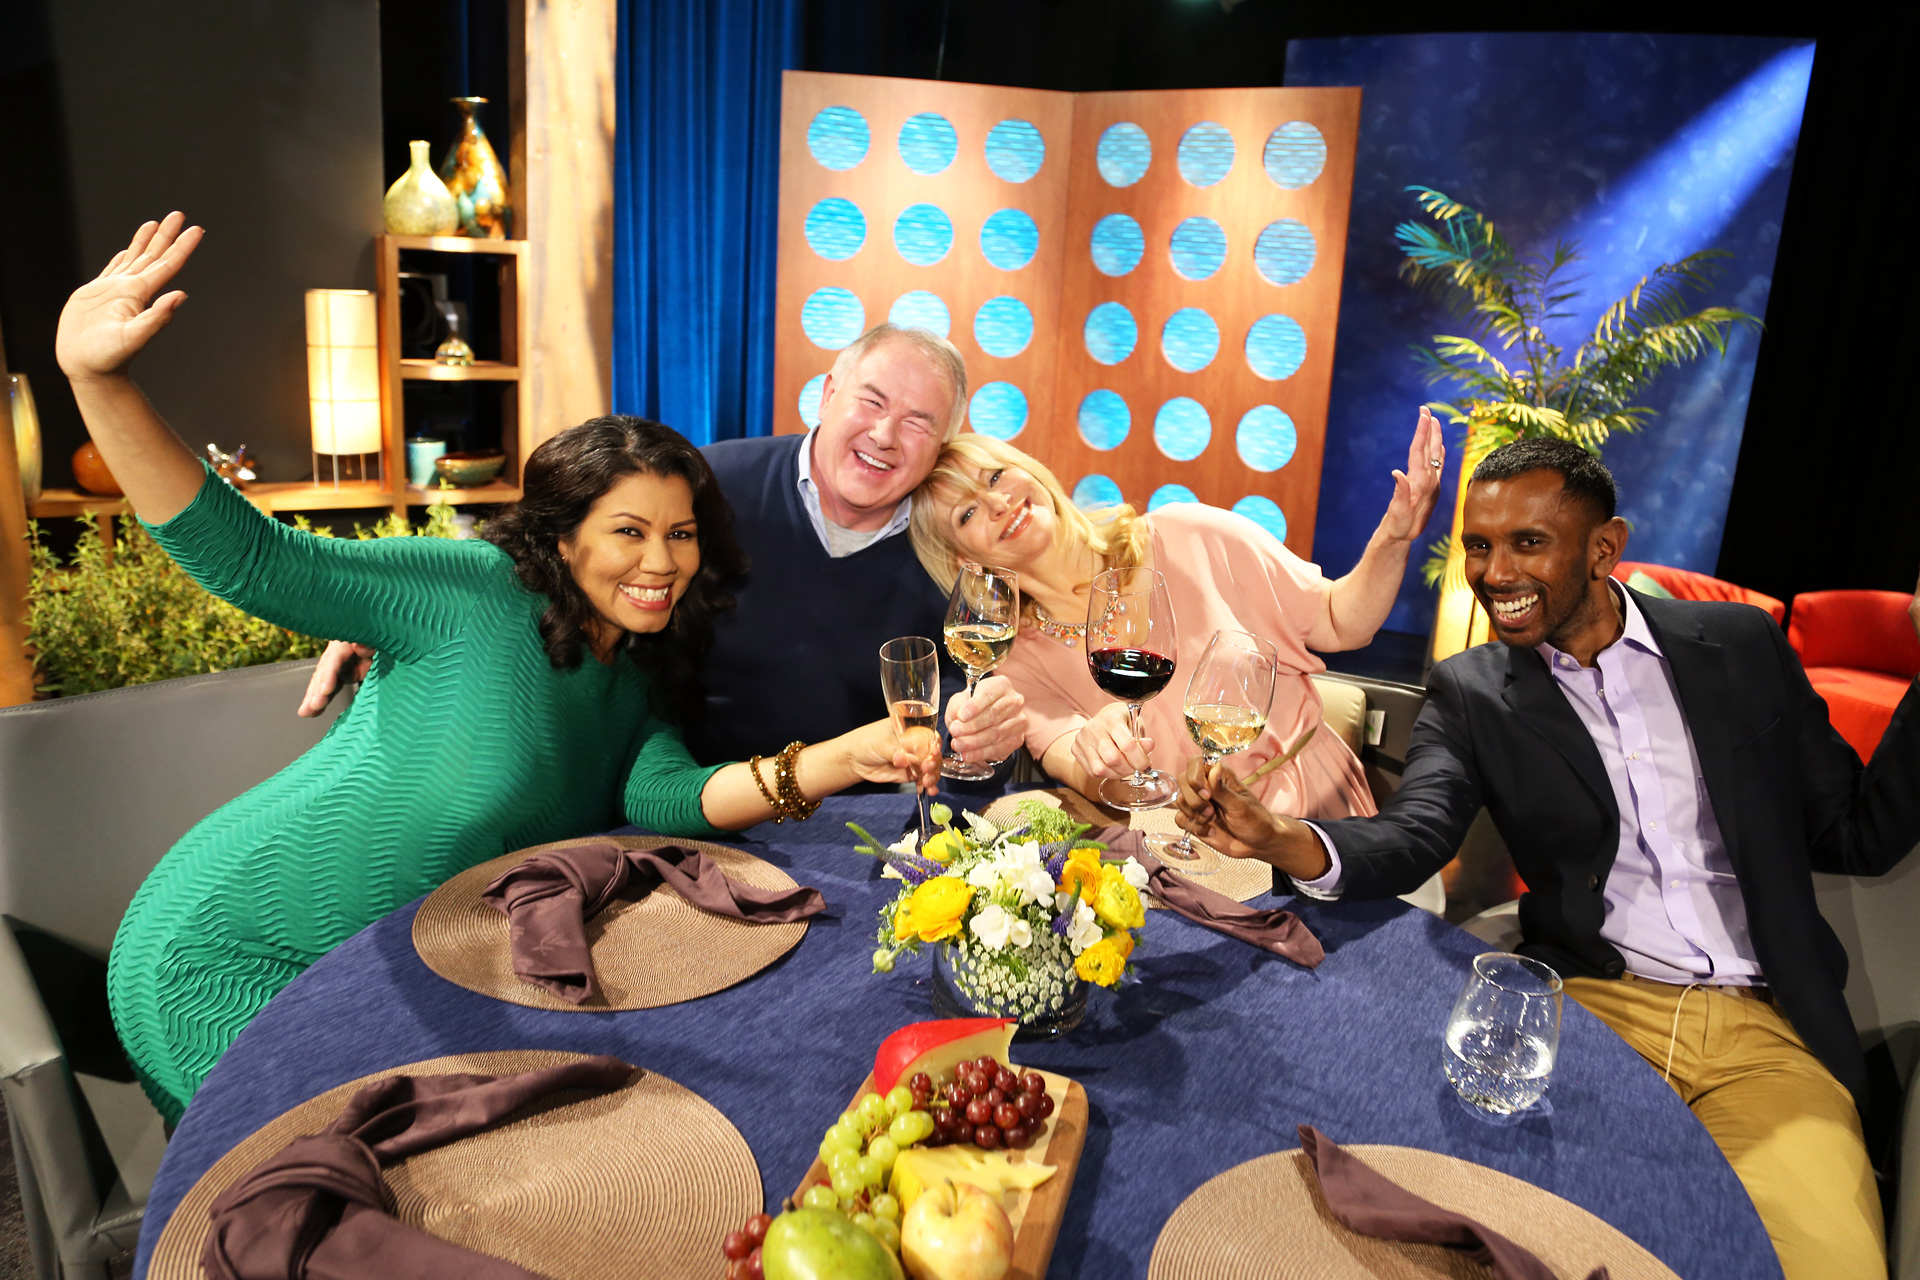 Host Leslie Sbrocco and guests having fun on the set of the episode 8 of season 11.